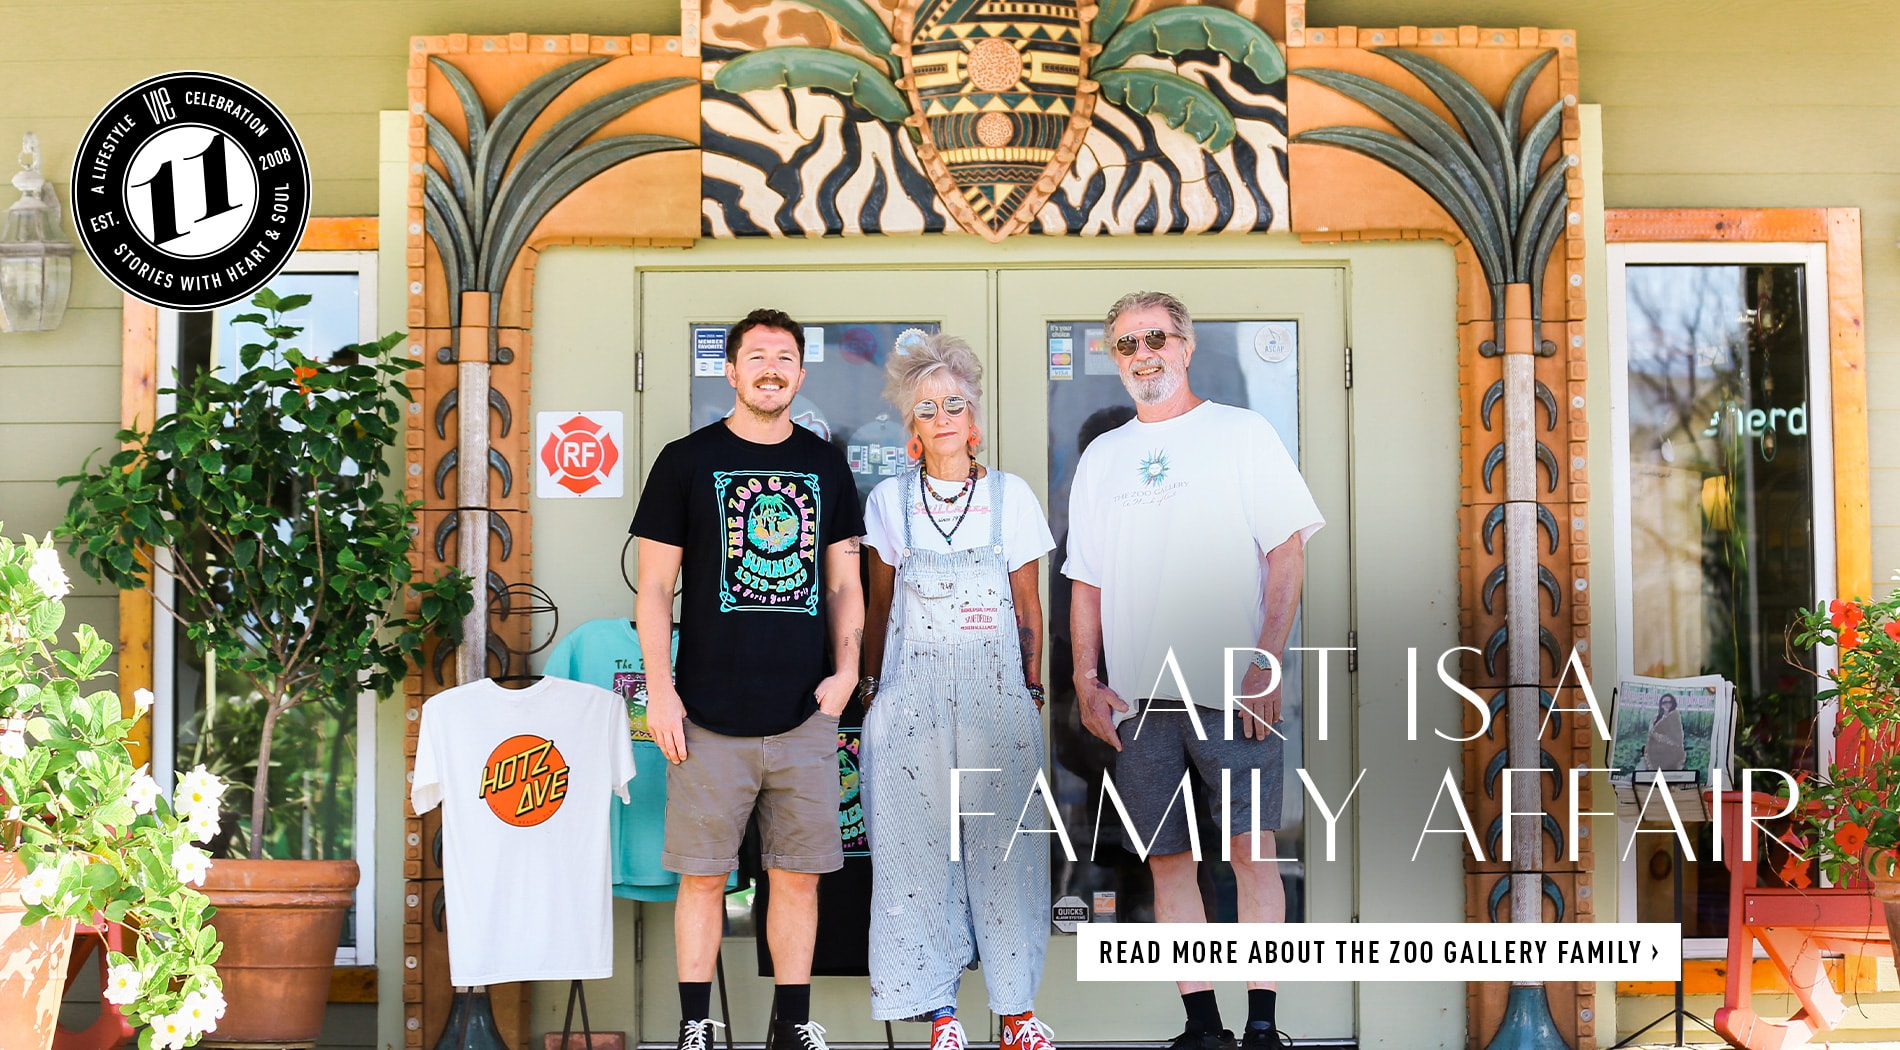 Celebrate forty years with The Zoo Gallery zookeepers! Share your Zoo T-shirt story, visit The Zoo Gallery in Grayton Beach or Grand Boulevard, and get news updates by following them on social media.